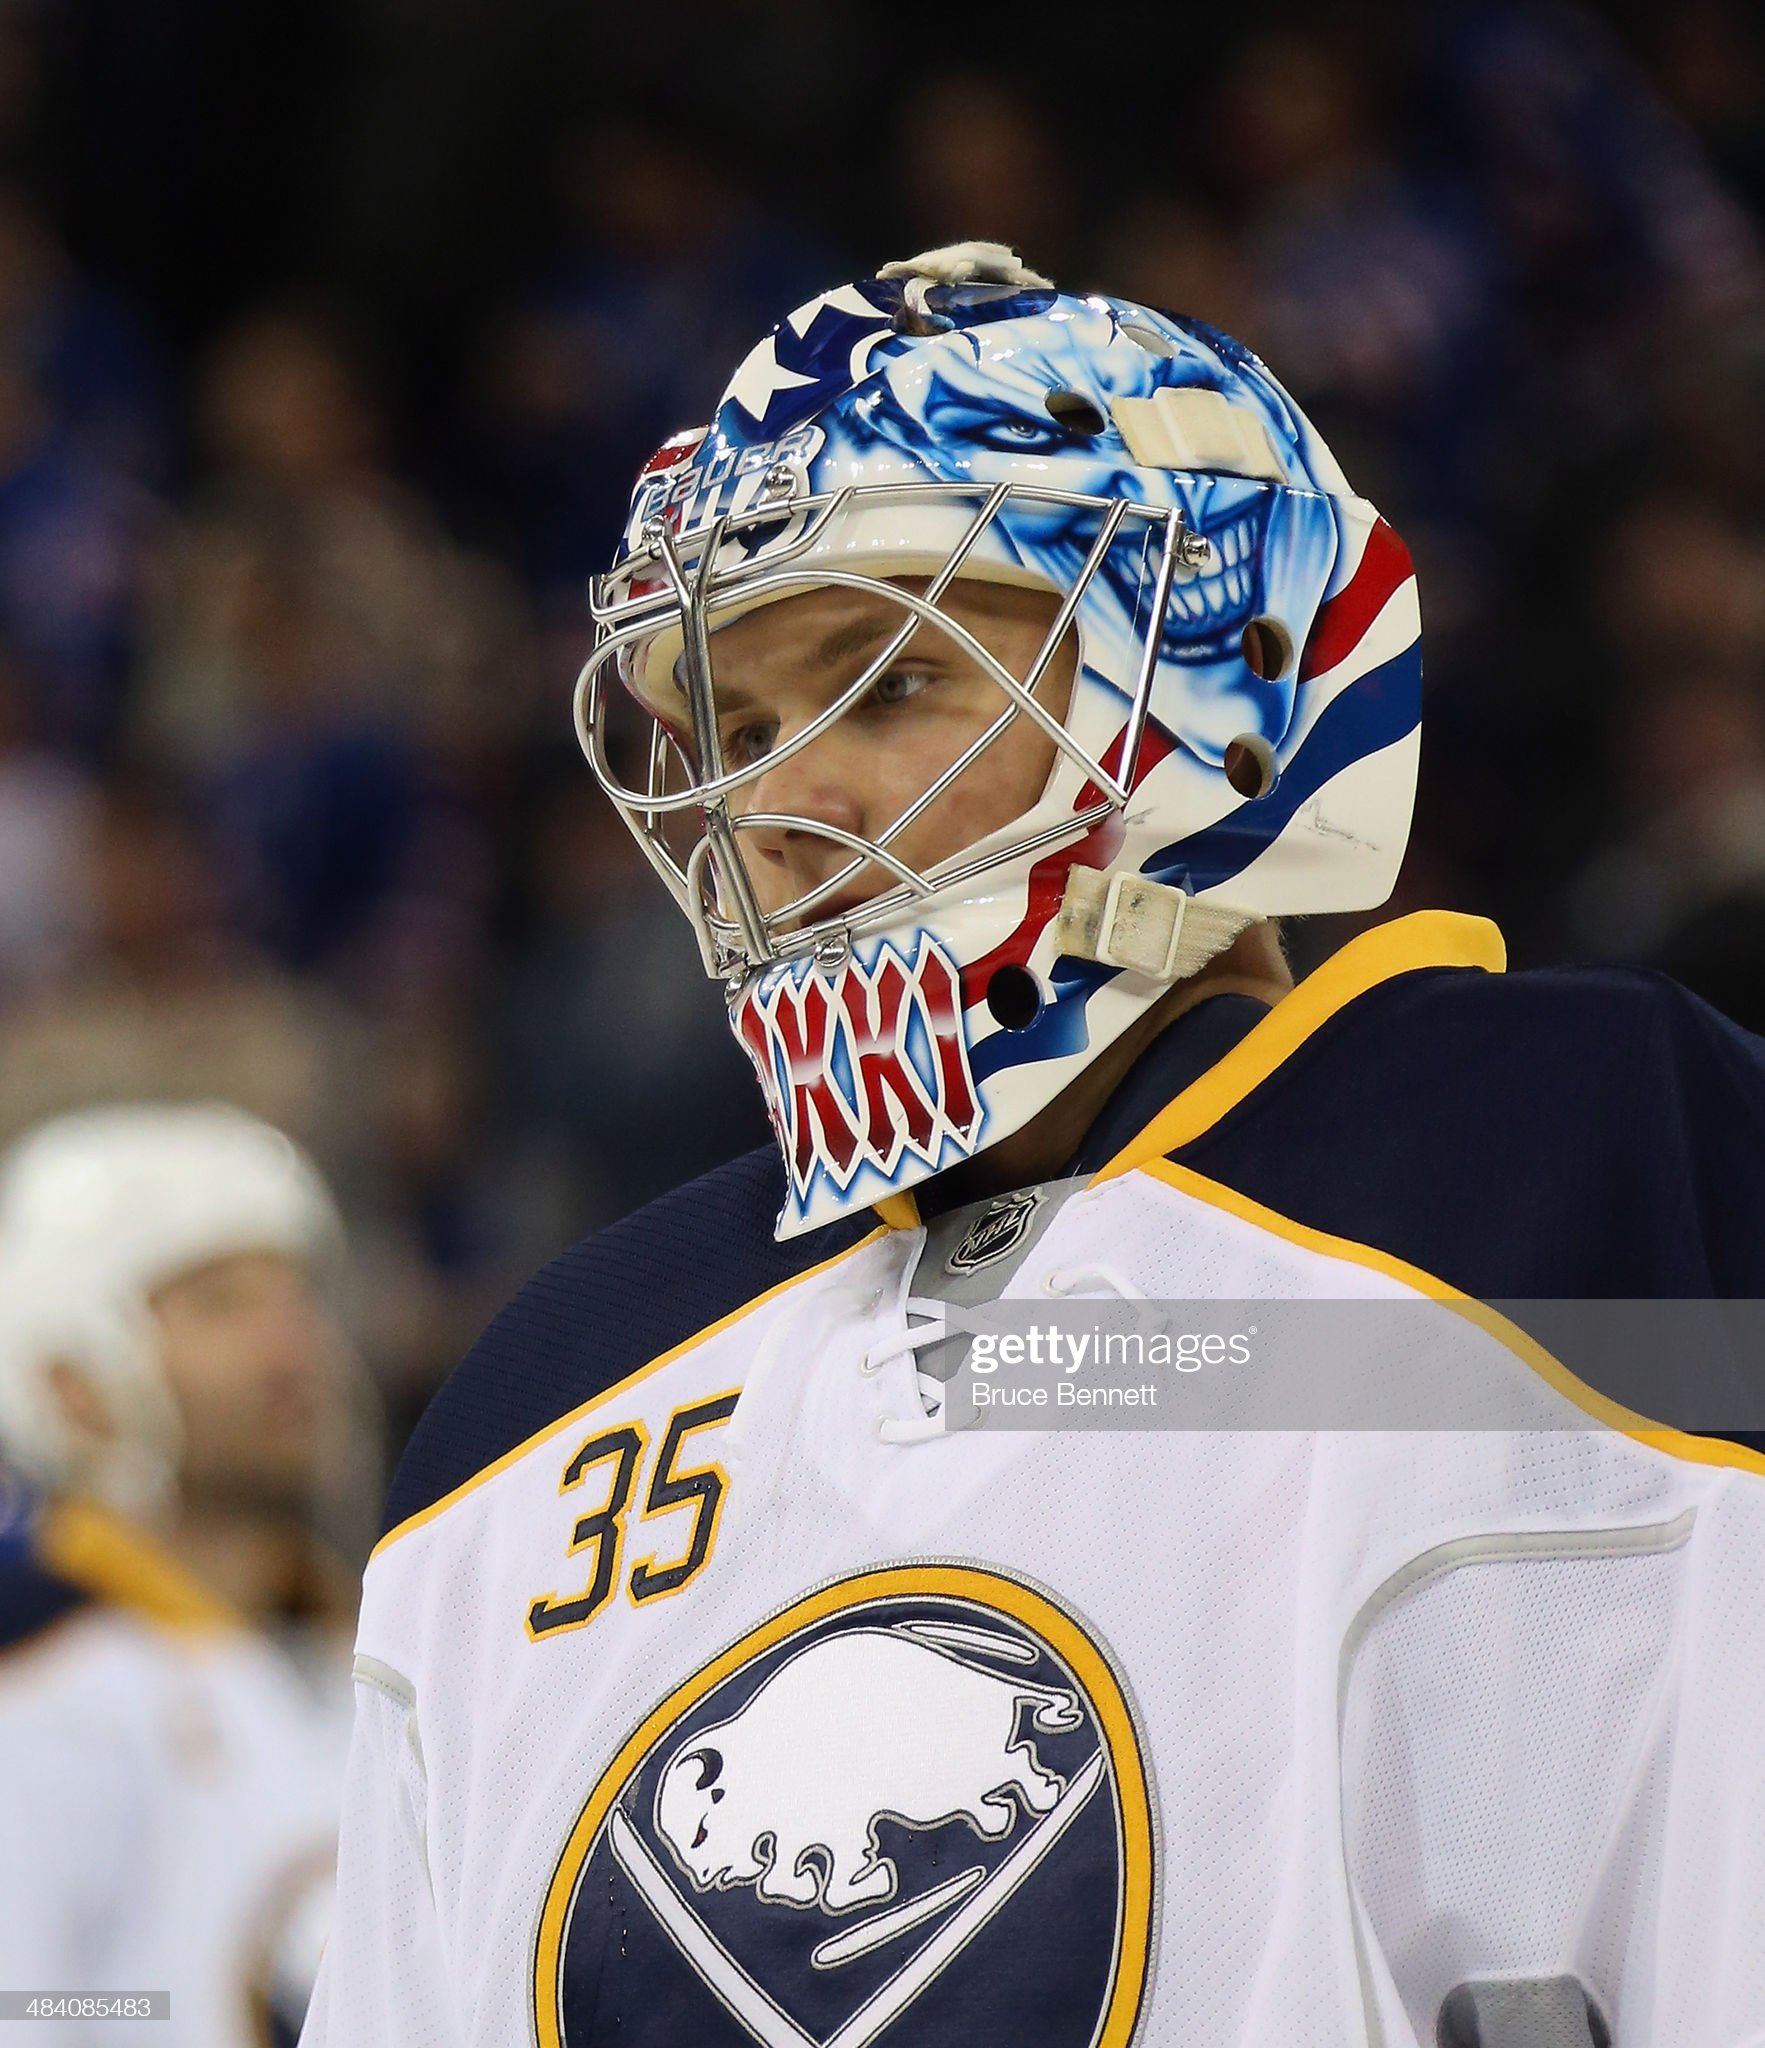 andrey-makarov-of-the-buffalo-sabres-ten